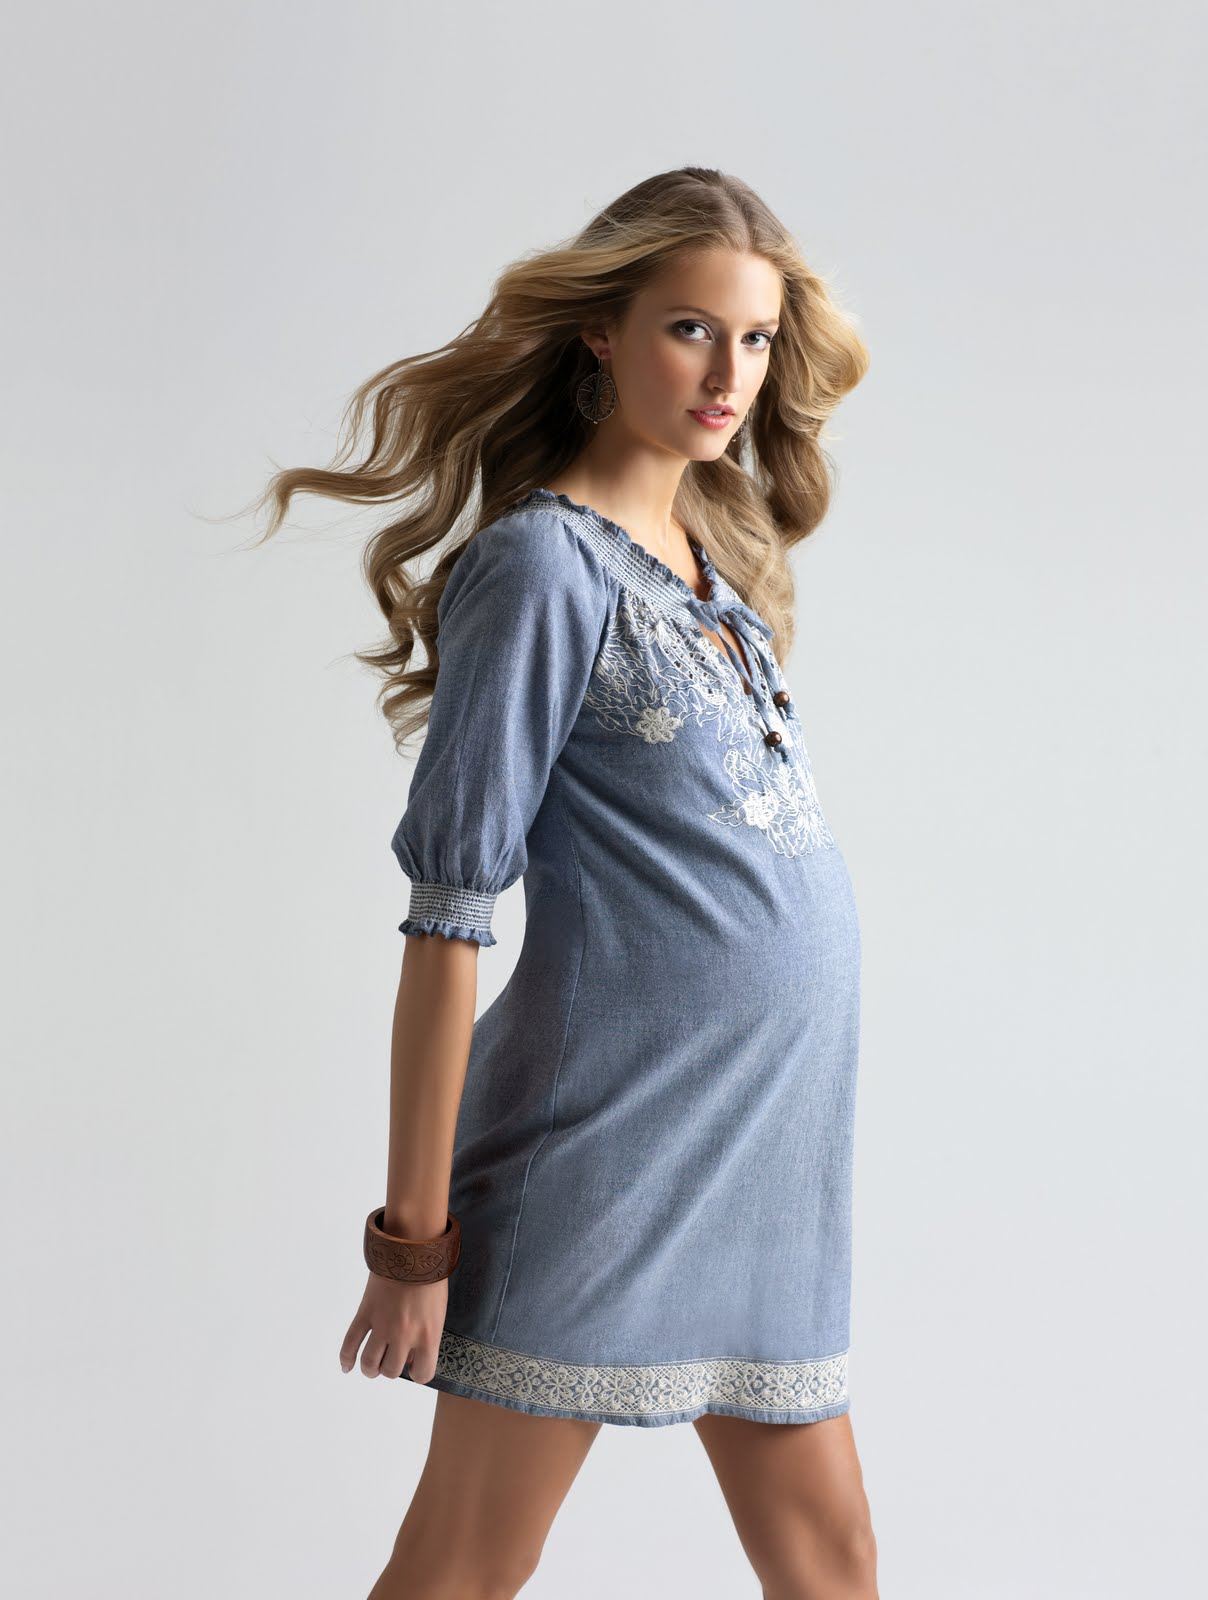 whiteazalea maternity dresses cute and casual summer